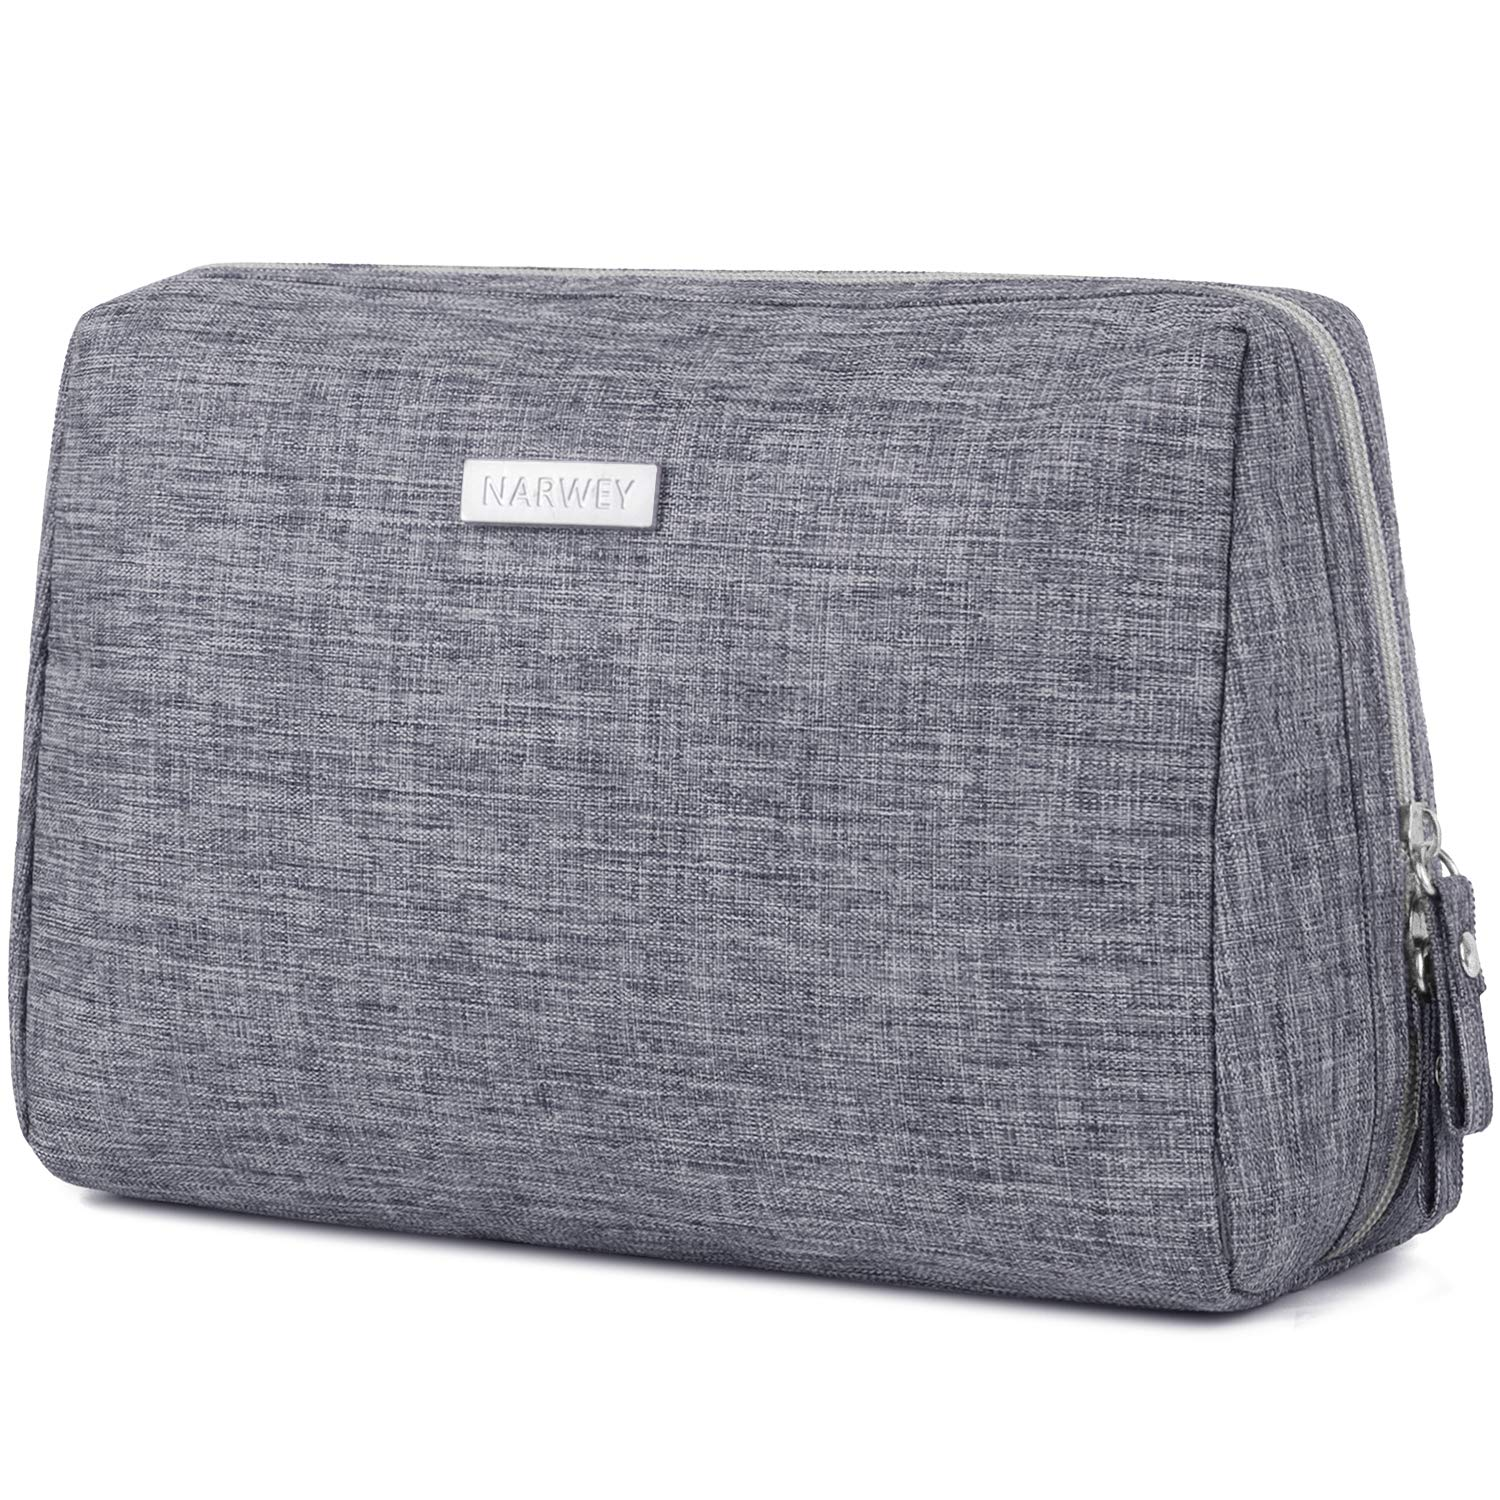 Large Makeup Bag Zipper Pouch Travel Cosmetic Organizer for Women and Girls (Large Gray)